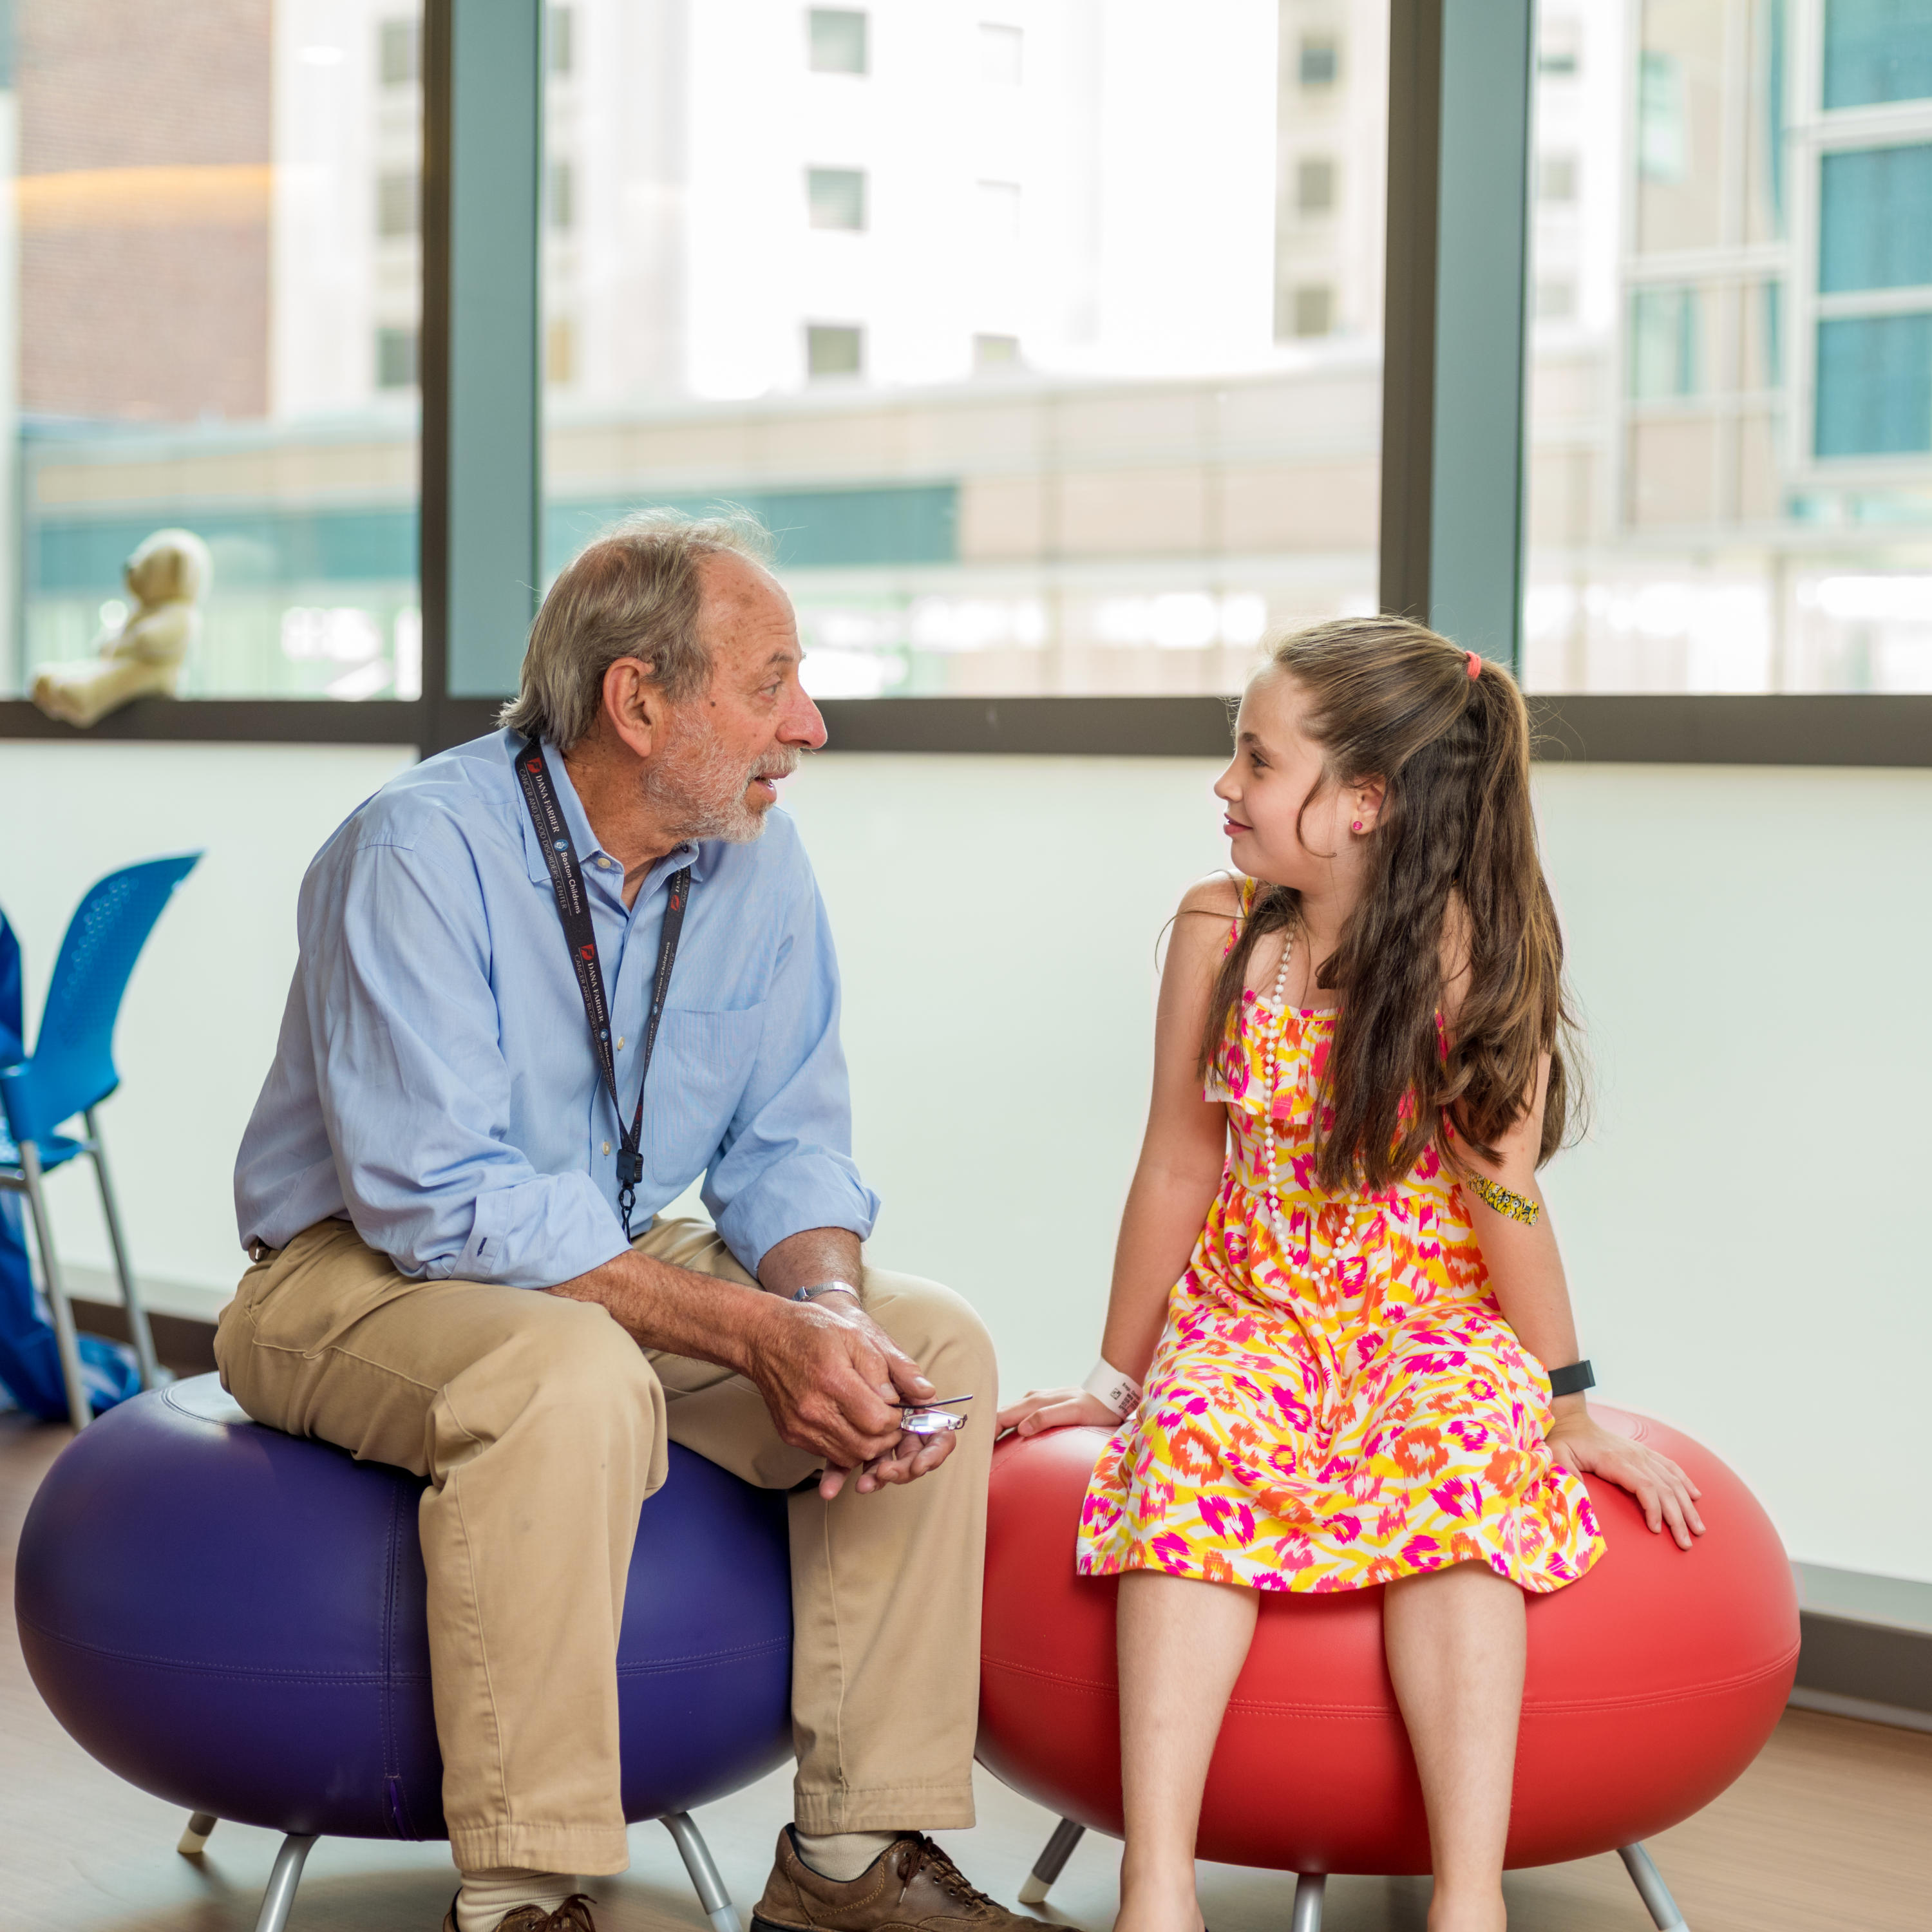 Photographed for Bone Marrow Failure BMF moved to JFC. Pediatric patient Charlotte Braga (consent # 7986) in the Jimmy Fund Clinic. With Colin Sieff, M.D. Severe Aplastic Anemia (SAA)